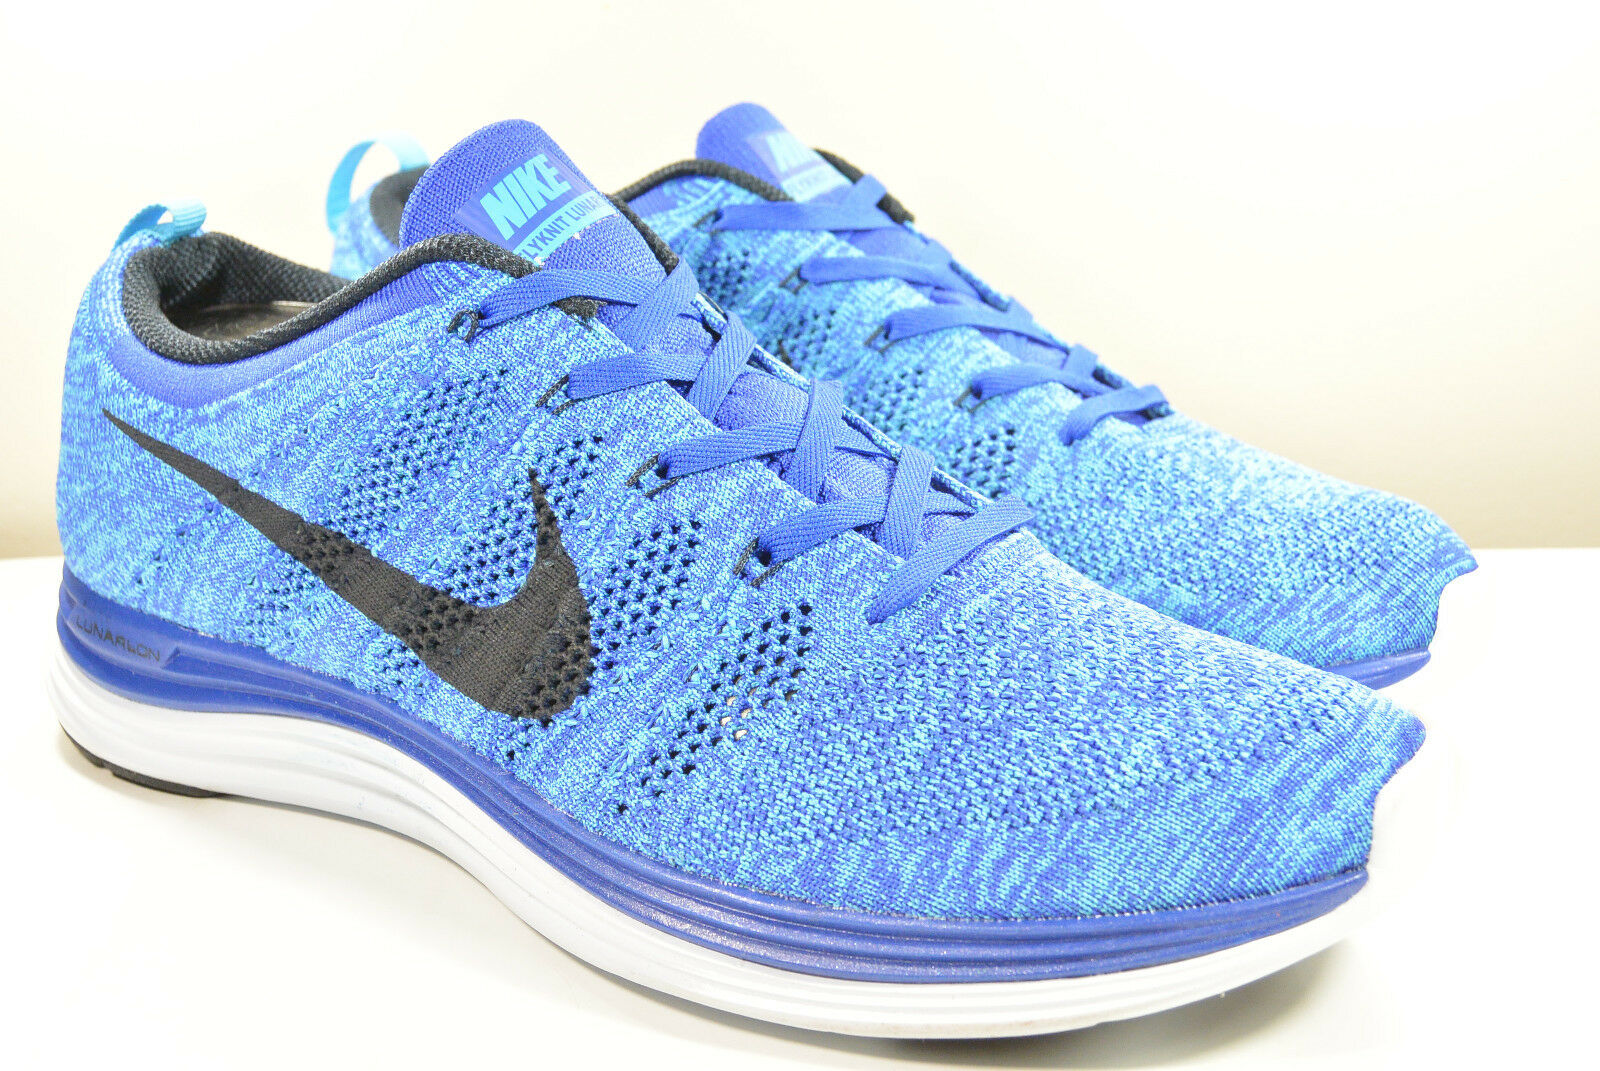 DS NIKE 2018 FLYKNIT LUNAR1 GAME ROYAL 13 OLYMPIC WOVEN PRESTO AIR MAX 1 90